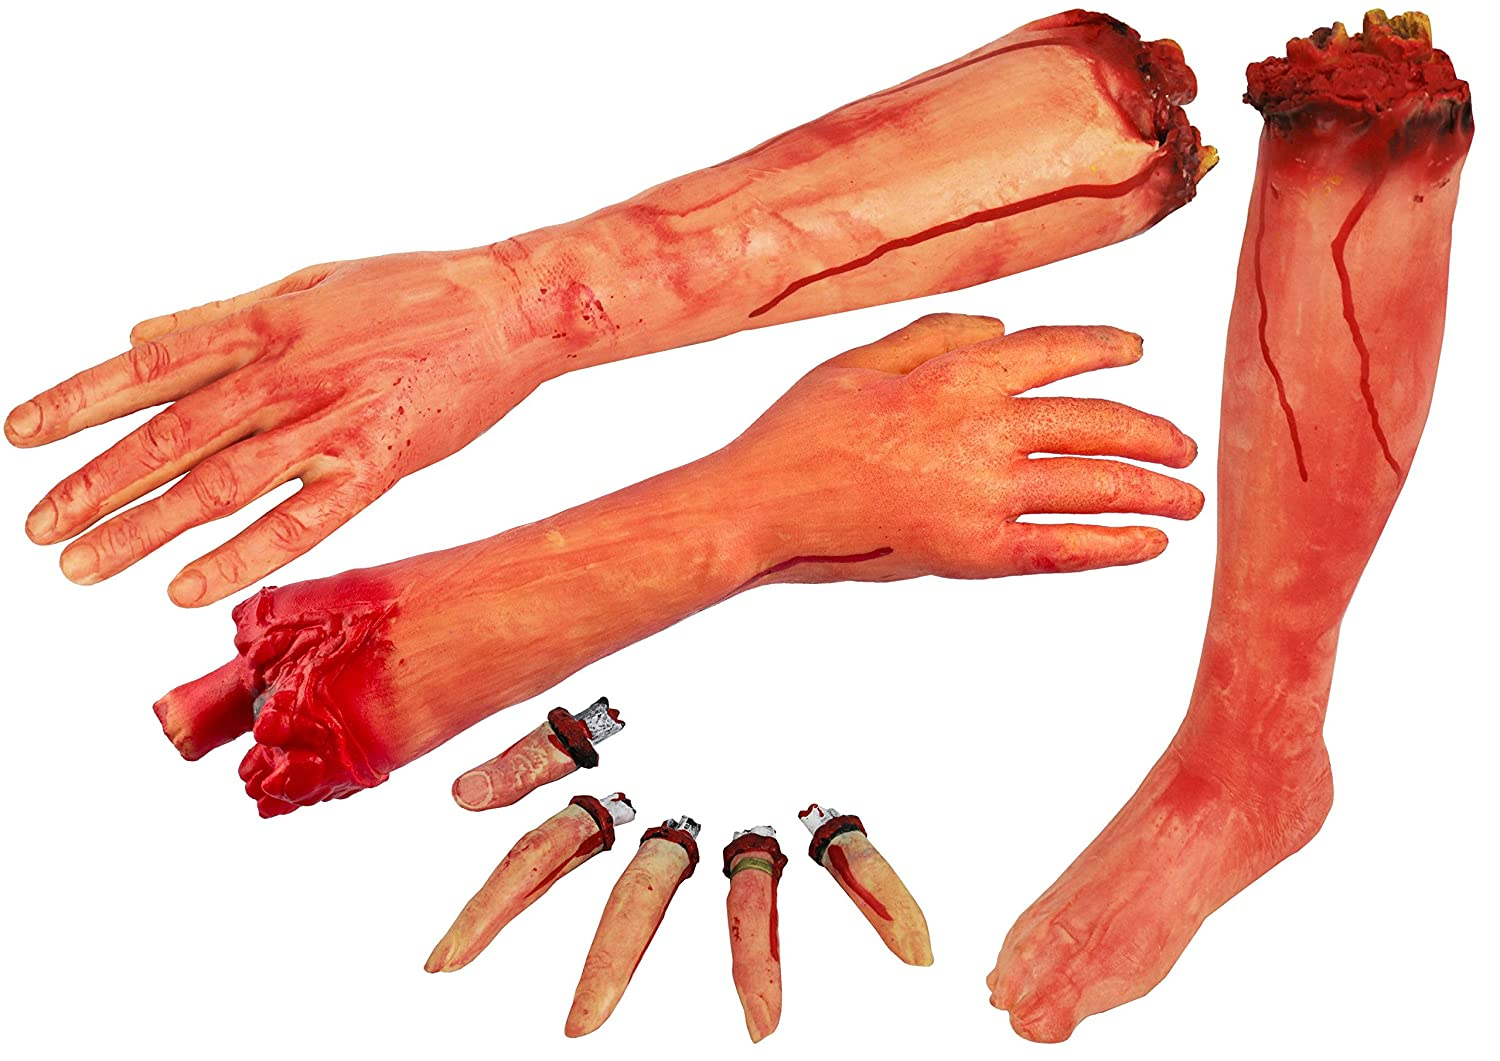 5 SEVERED FINGERS HALLOWEEN PROP - SEVERED THUMB + FOUR SEVERED FINGERS HALLOWEEN FANCY DRESS ILOVEFANCYDRESS